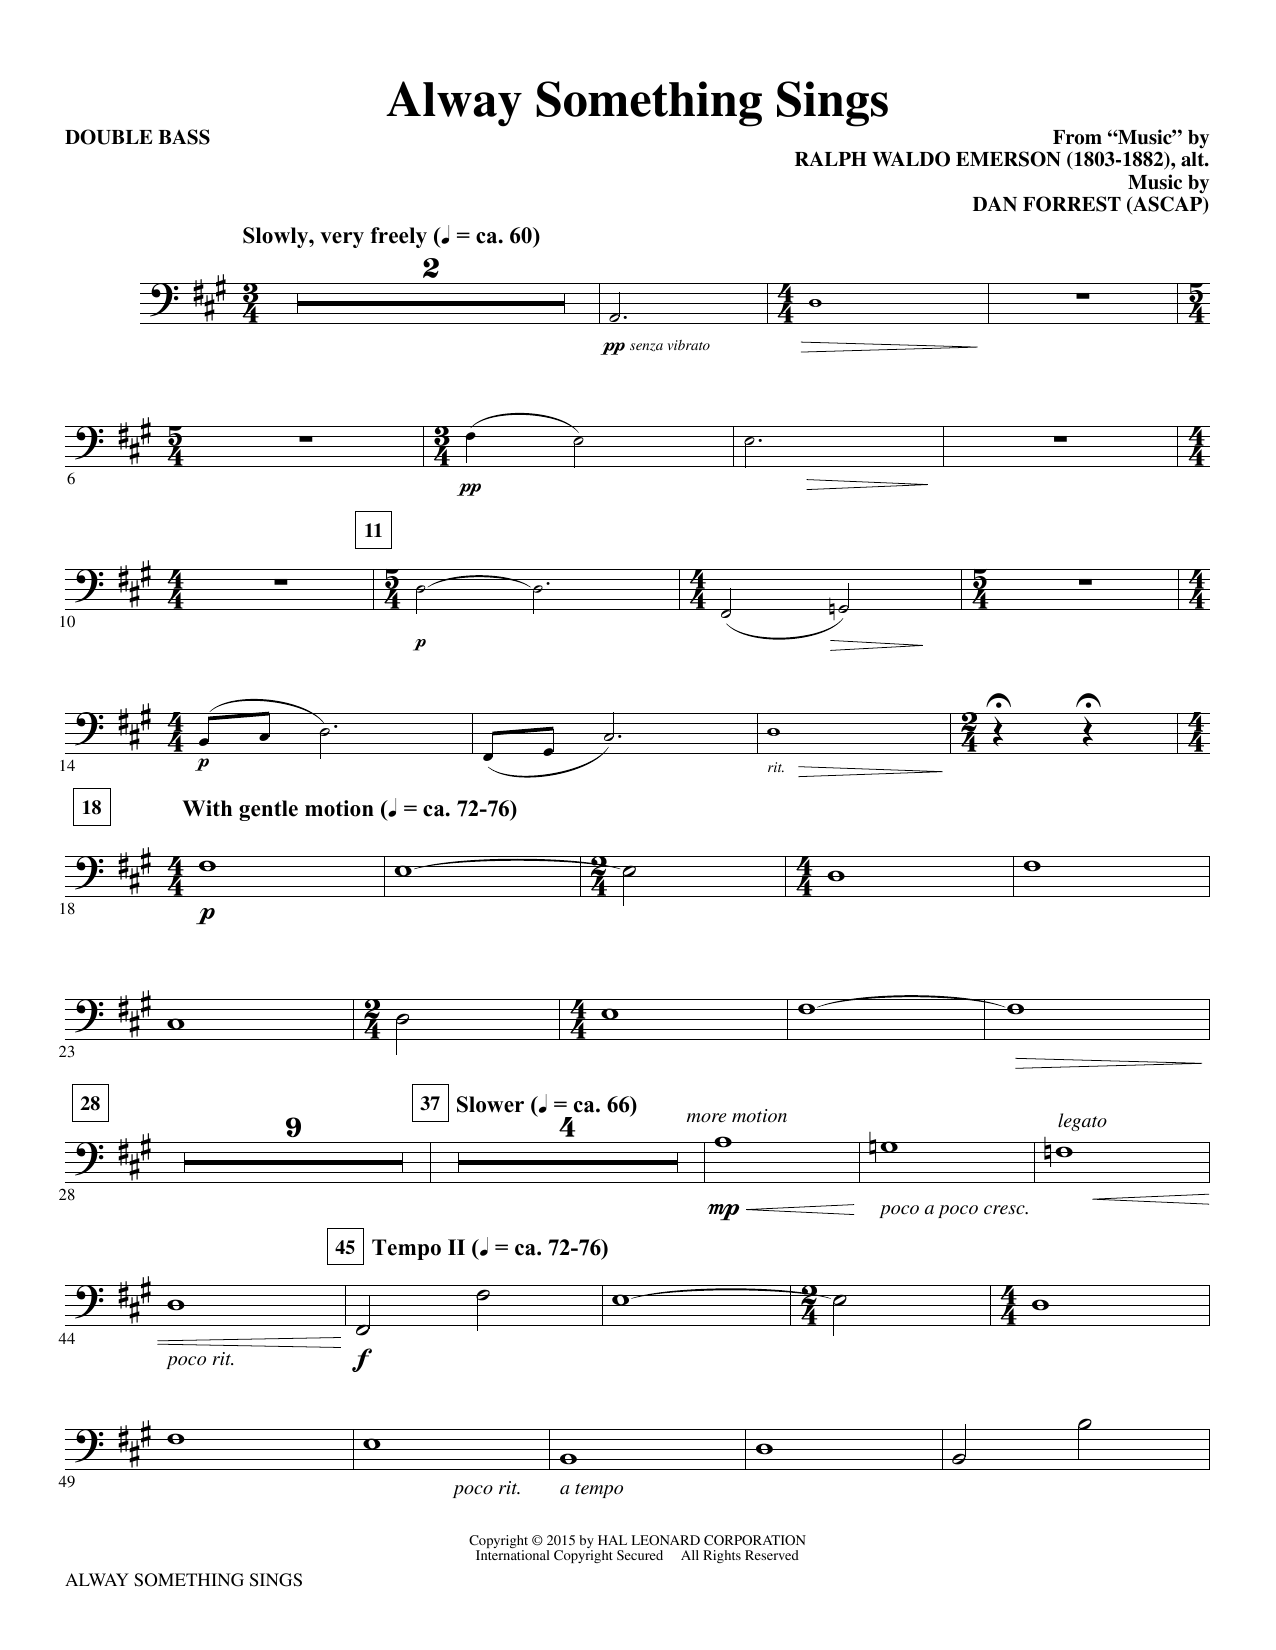 Dan Forrest Alway Something Sings - Double Bass sheet music notes and chords. Download Printable PDF.